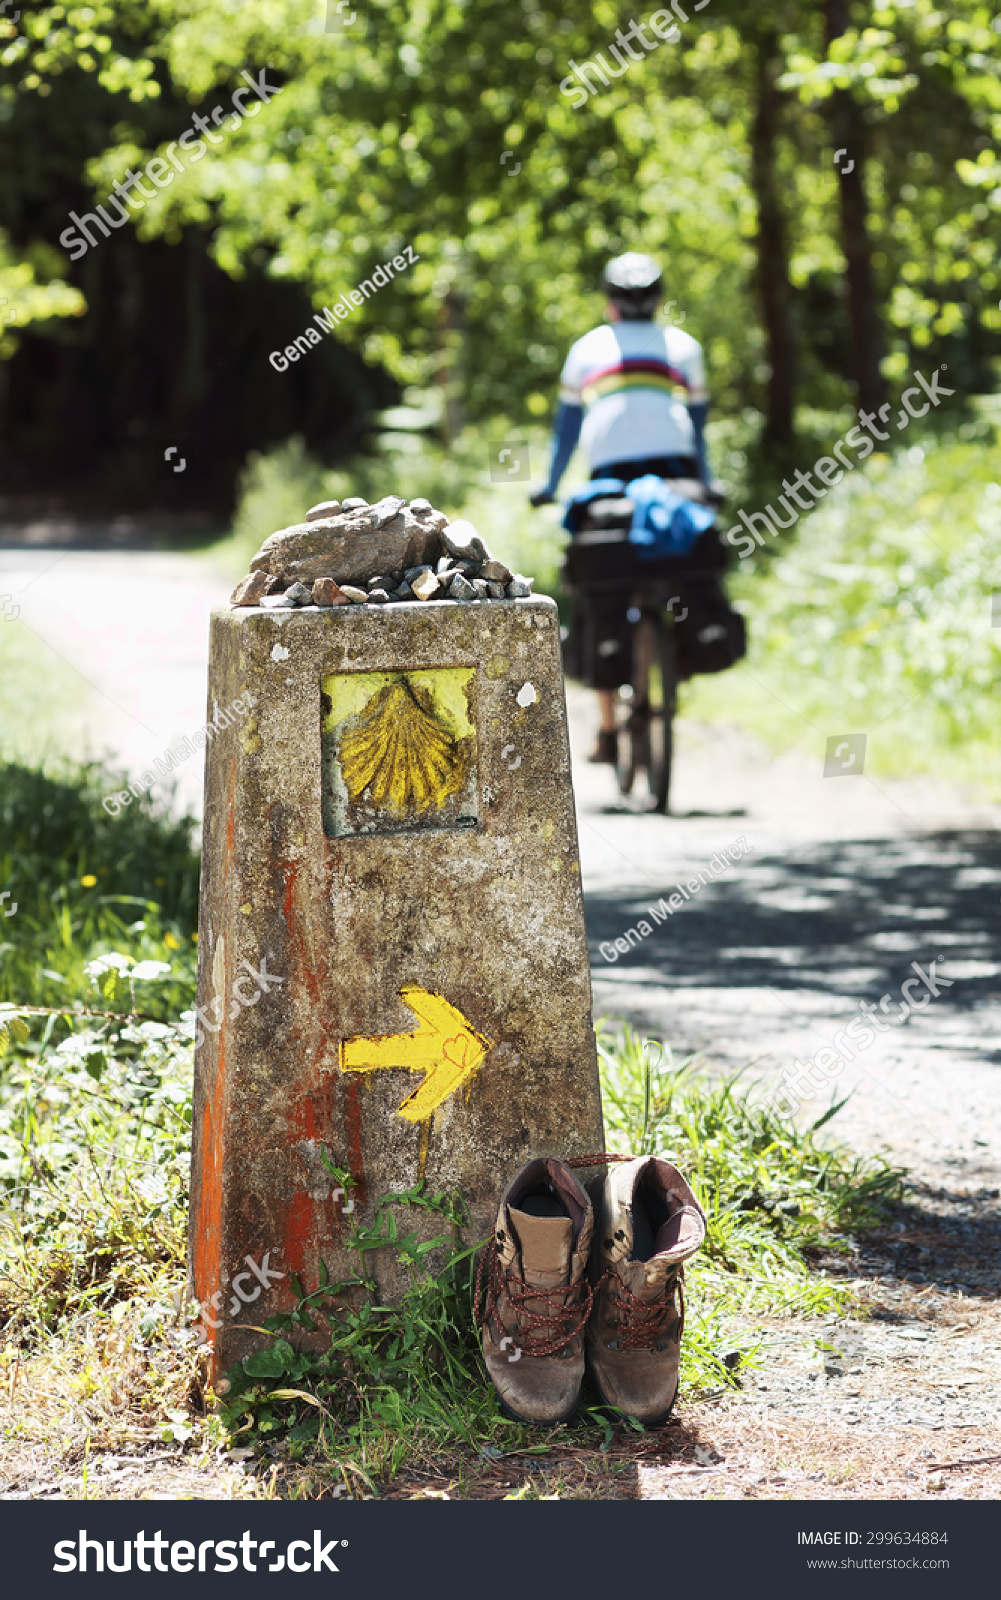 Way St James Shell Yellow Arrow Stock Photo 299634884